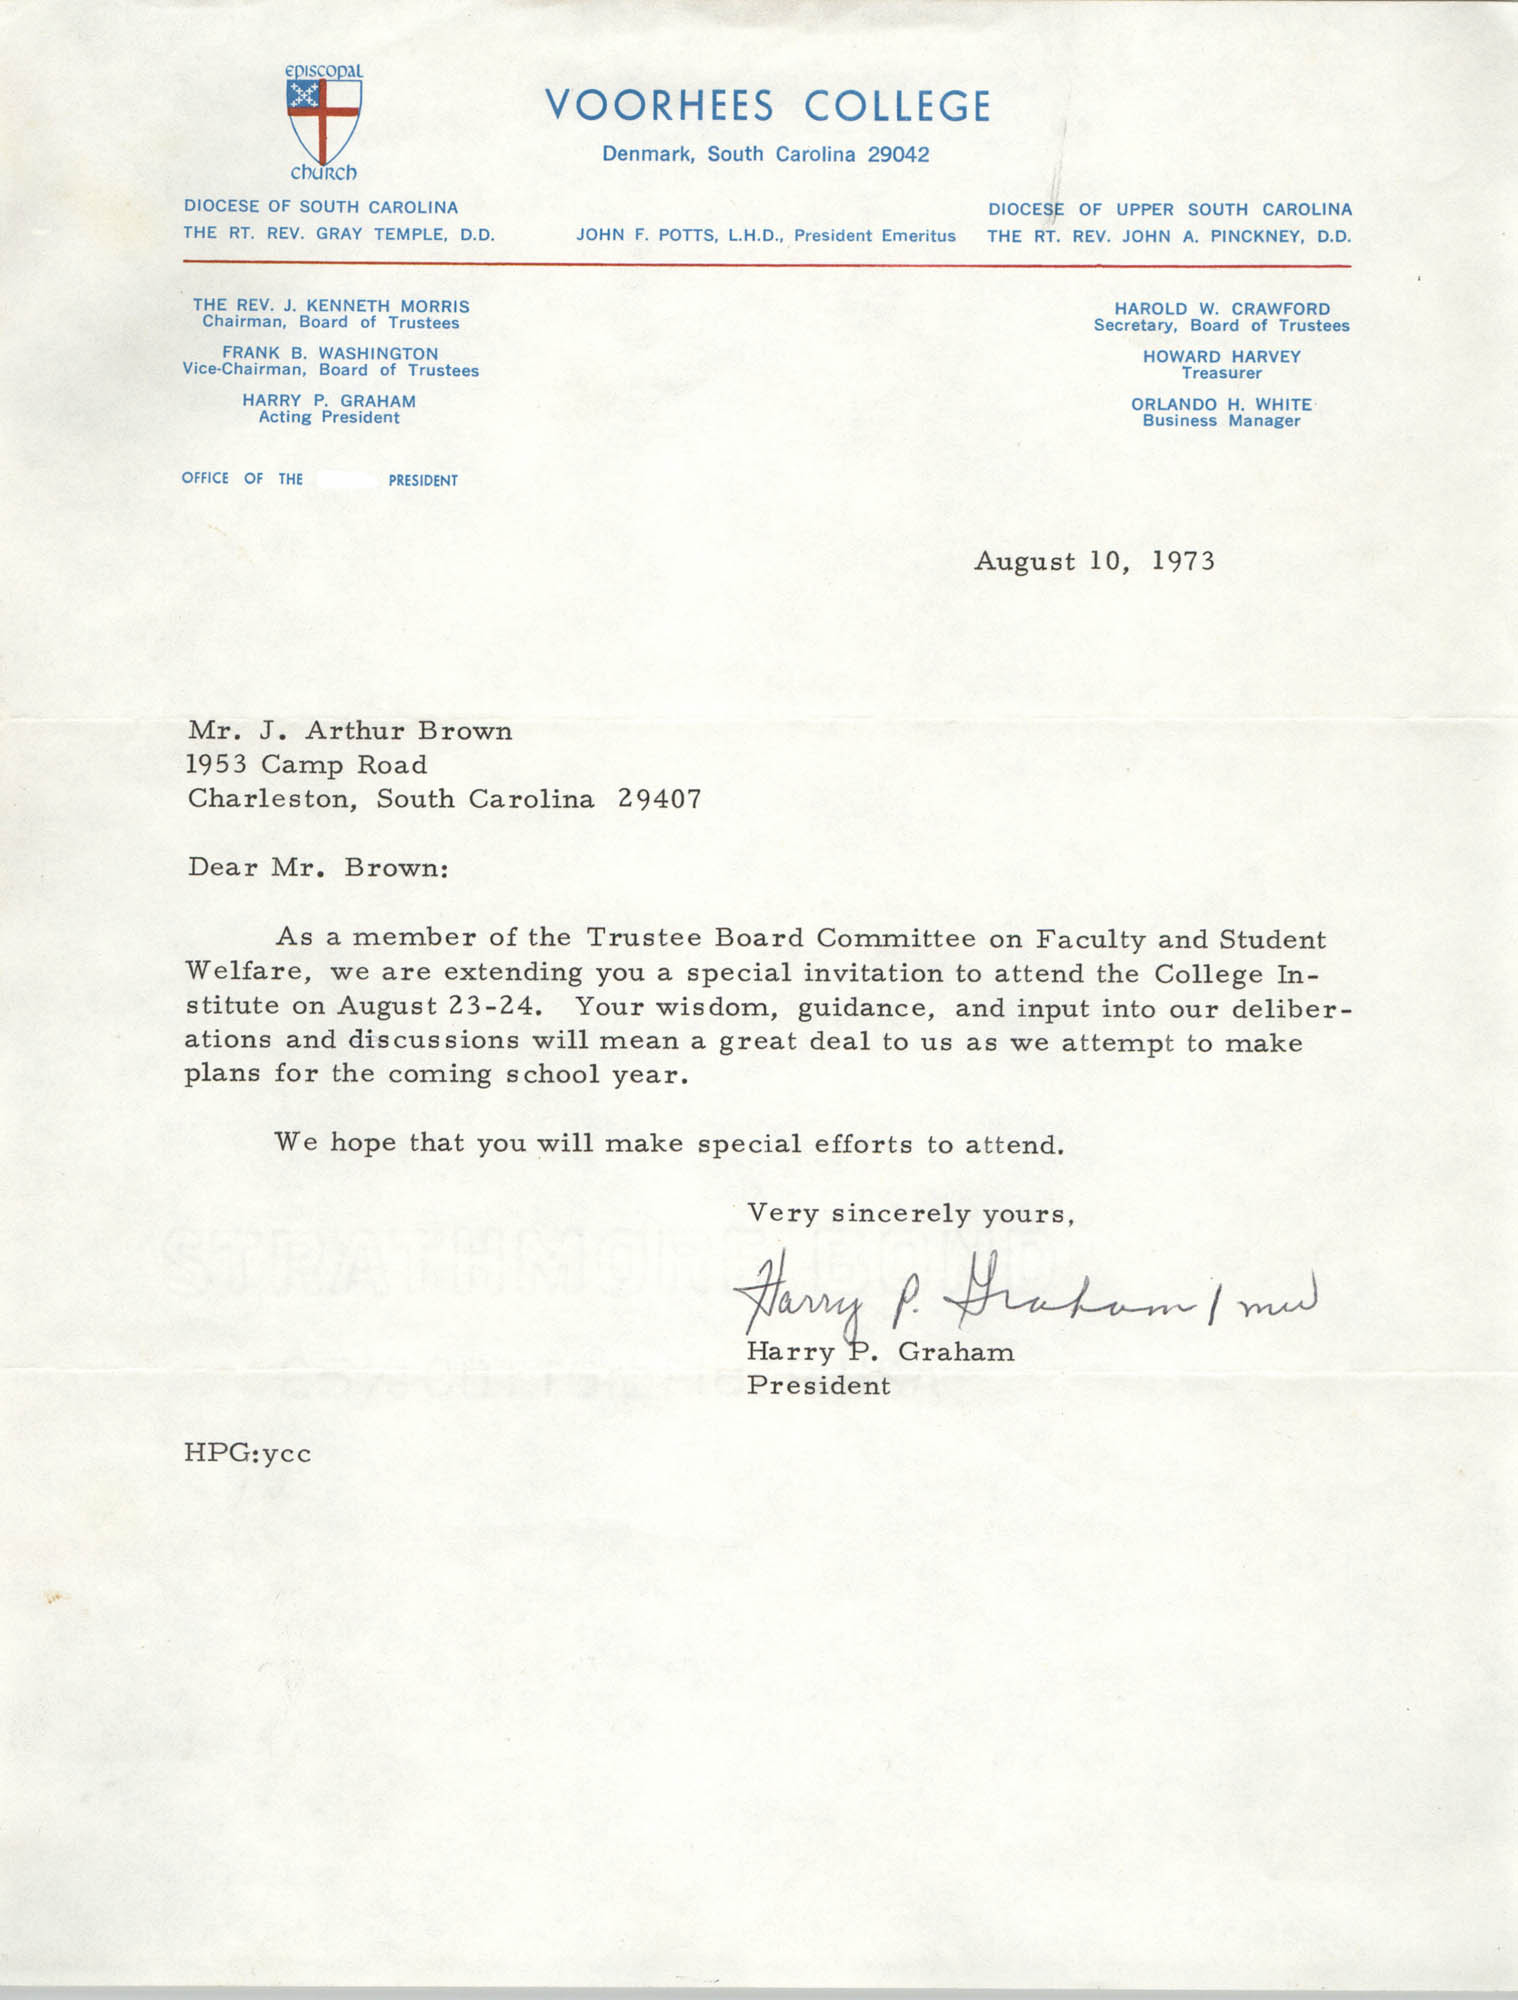 Letter from Harry P. Graham to J. Arthur Brown, August 10, 1973